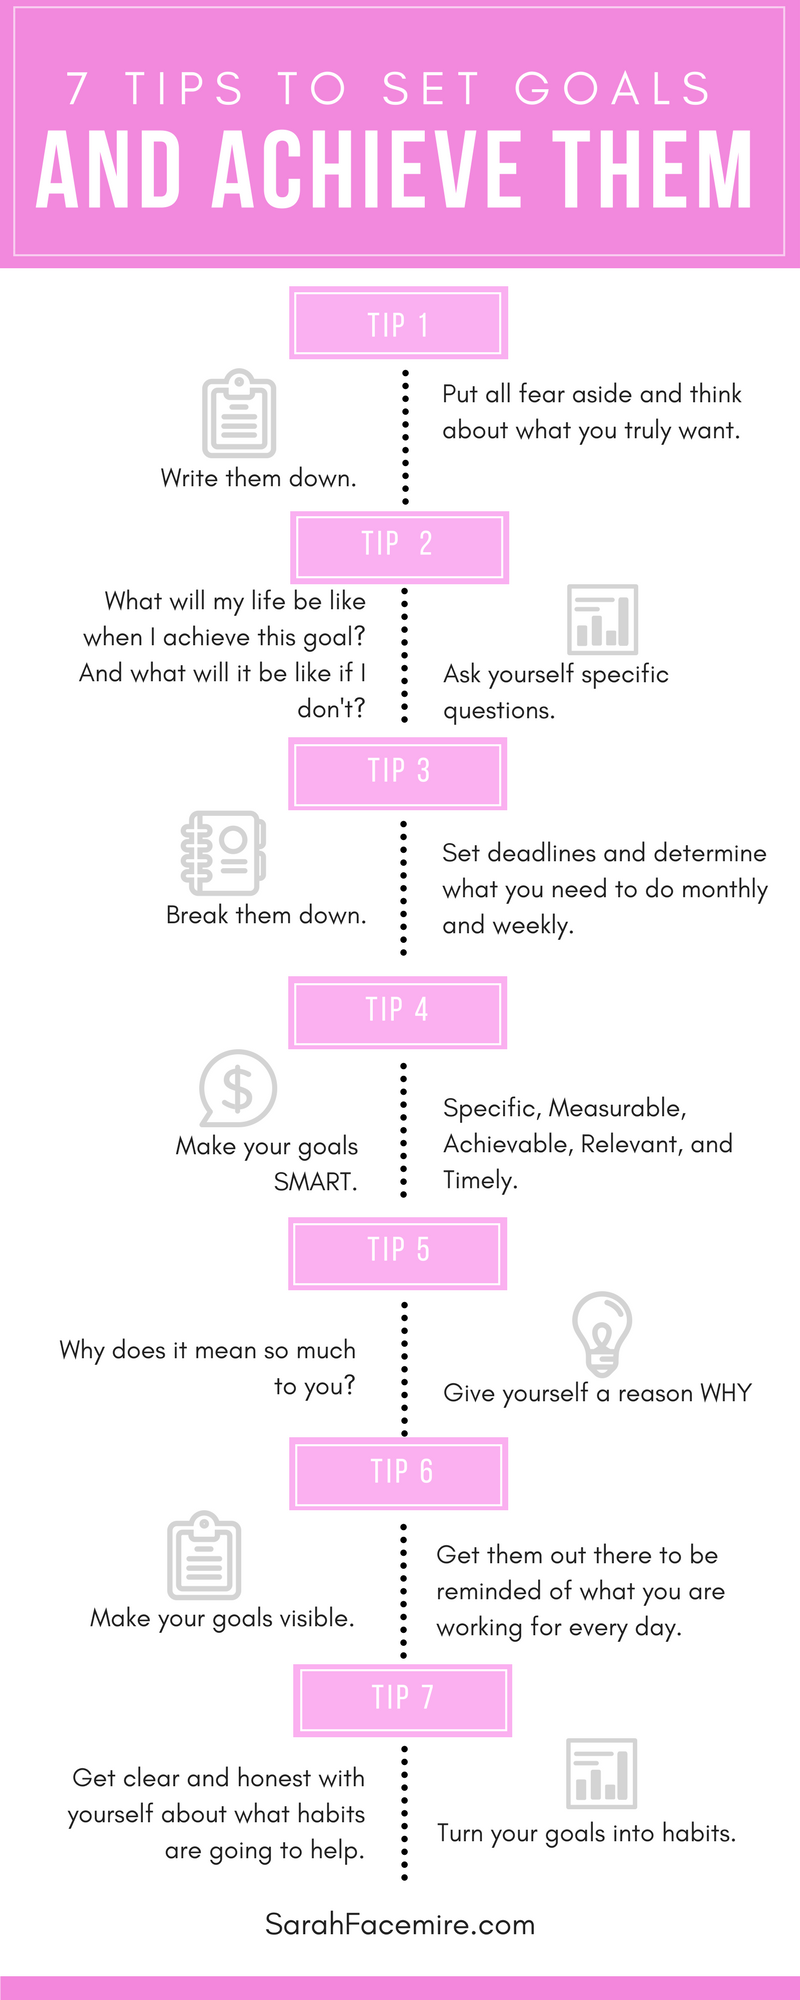 7 tips to set goals and achieve them (1)